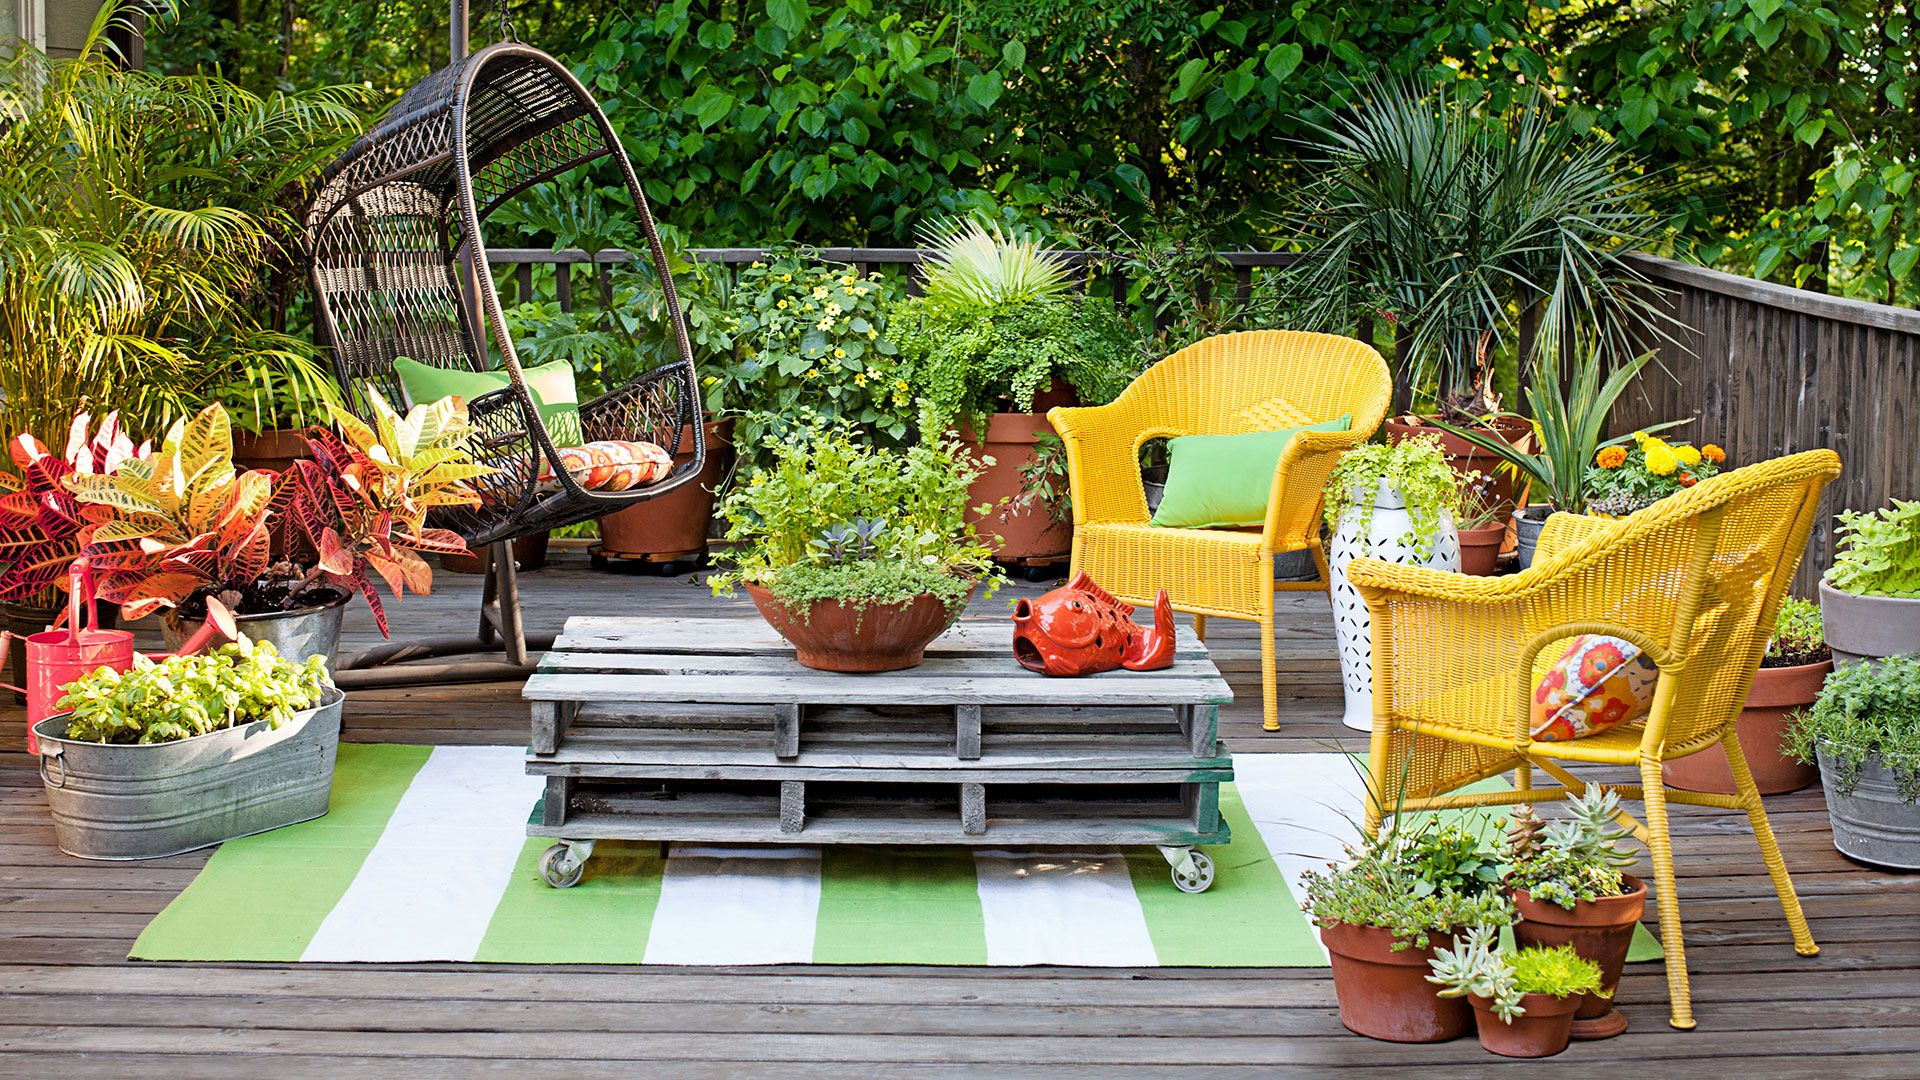 35 Backyard Decorating Ideas Easy Gardening Tips And Diy Projects